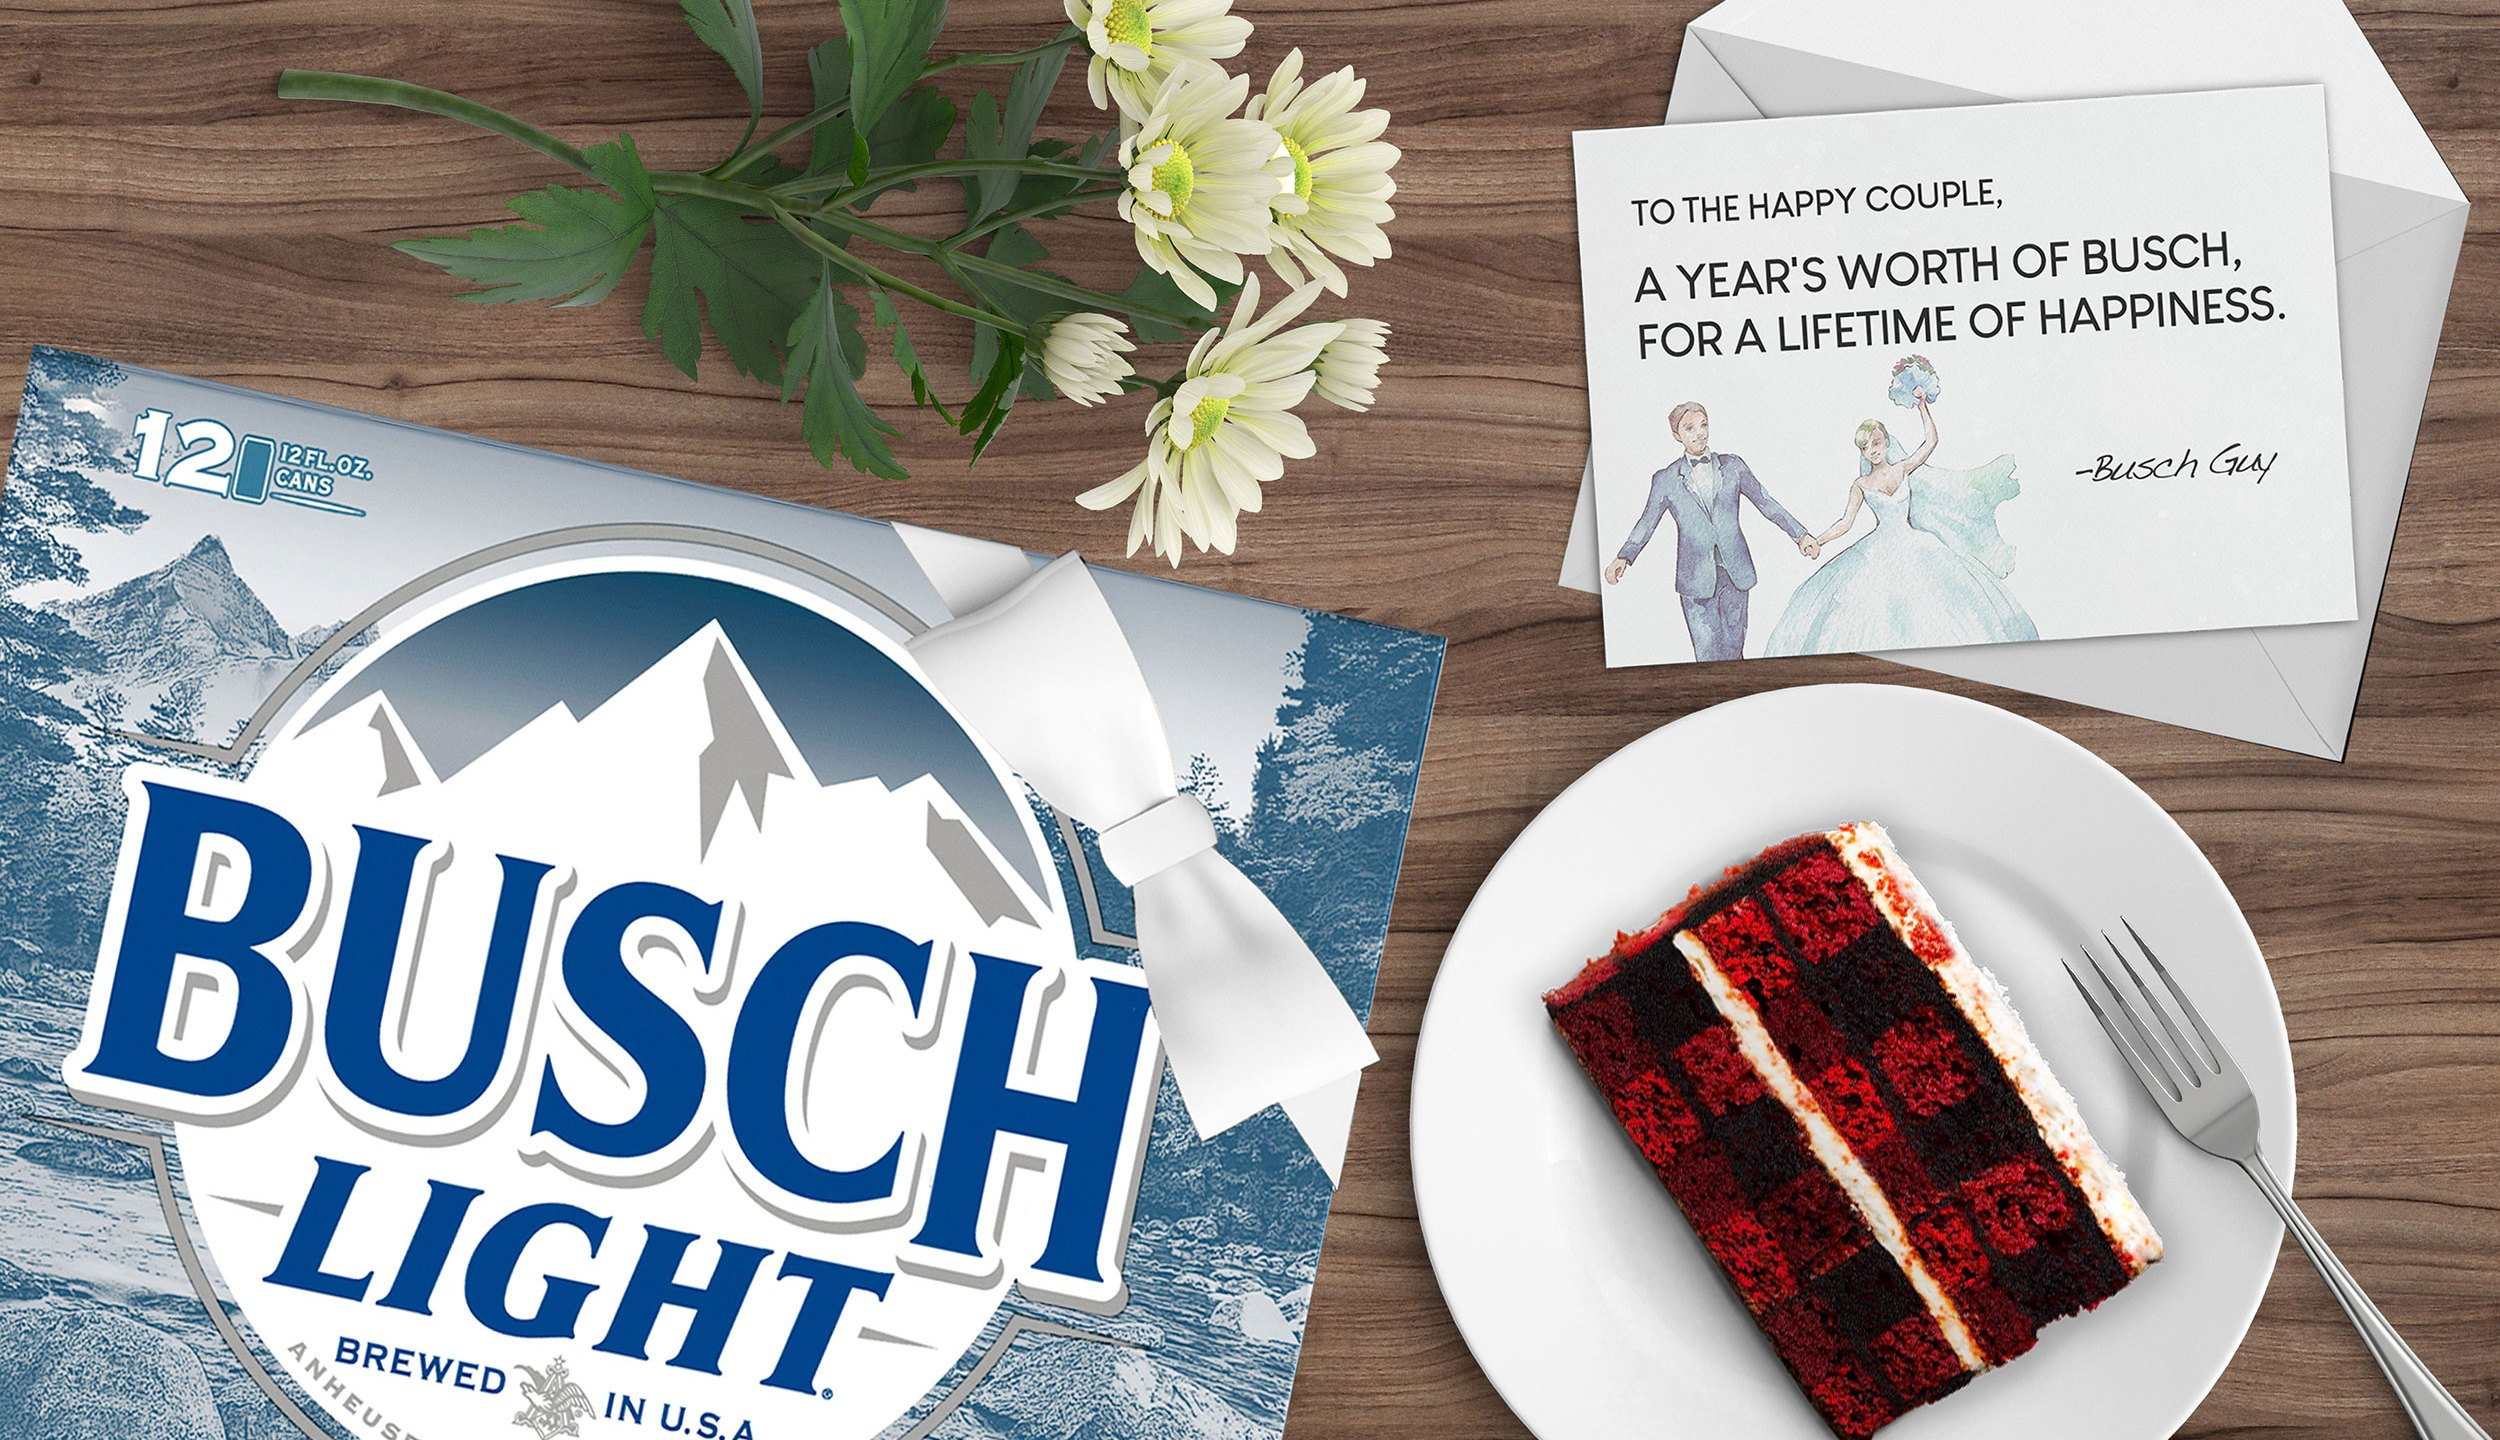 A photo shared by Busch Beer in announcing its offer to give couples a year's supply of free beer.